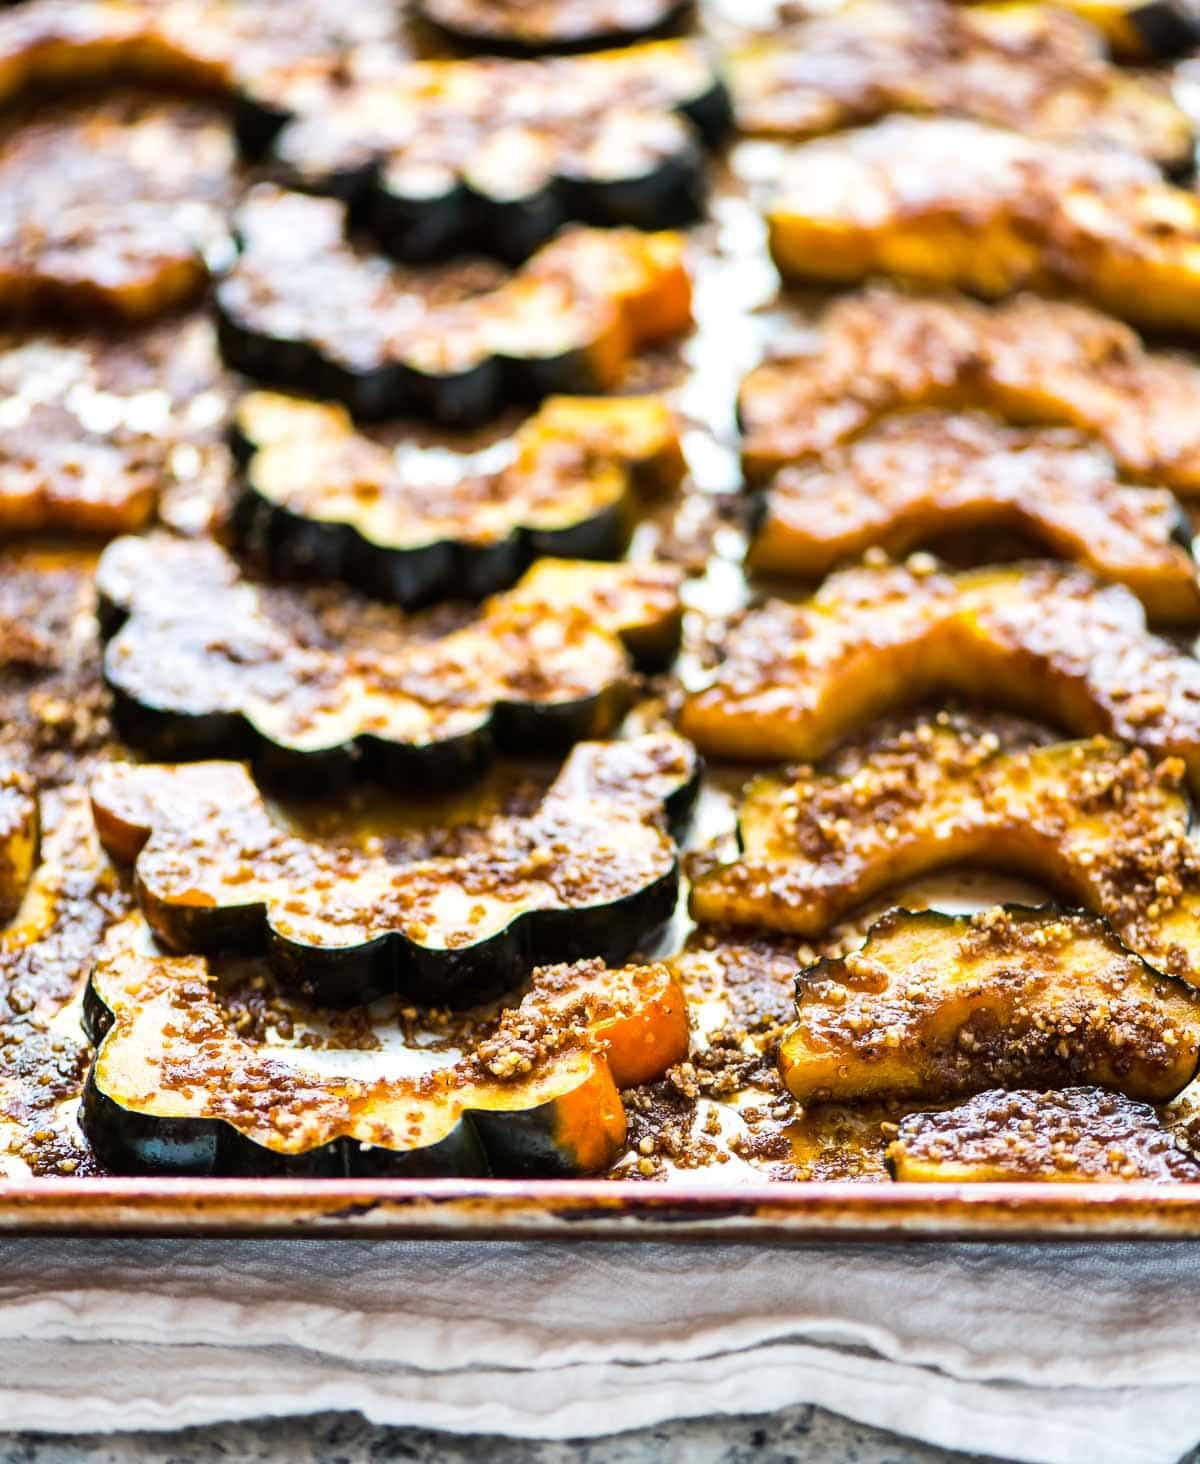 Baked Acorn Squash Slices with Brown Sugar and Pecans. Simple and DELICIOUS. Less than 30 minutes in the oven. Perfect holiday side dish or anytime you need a quick and easy side. Recipe at wellplated.com | @wellplated